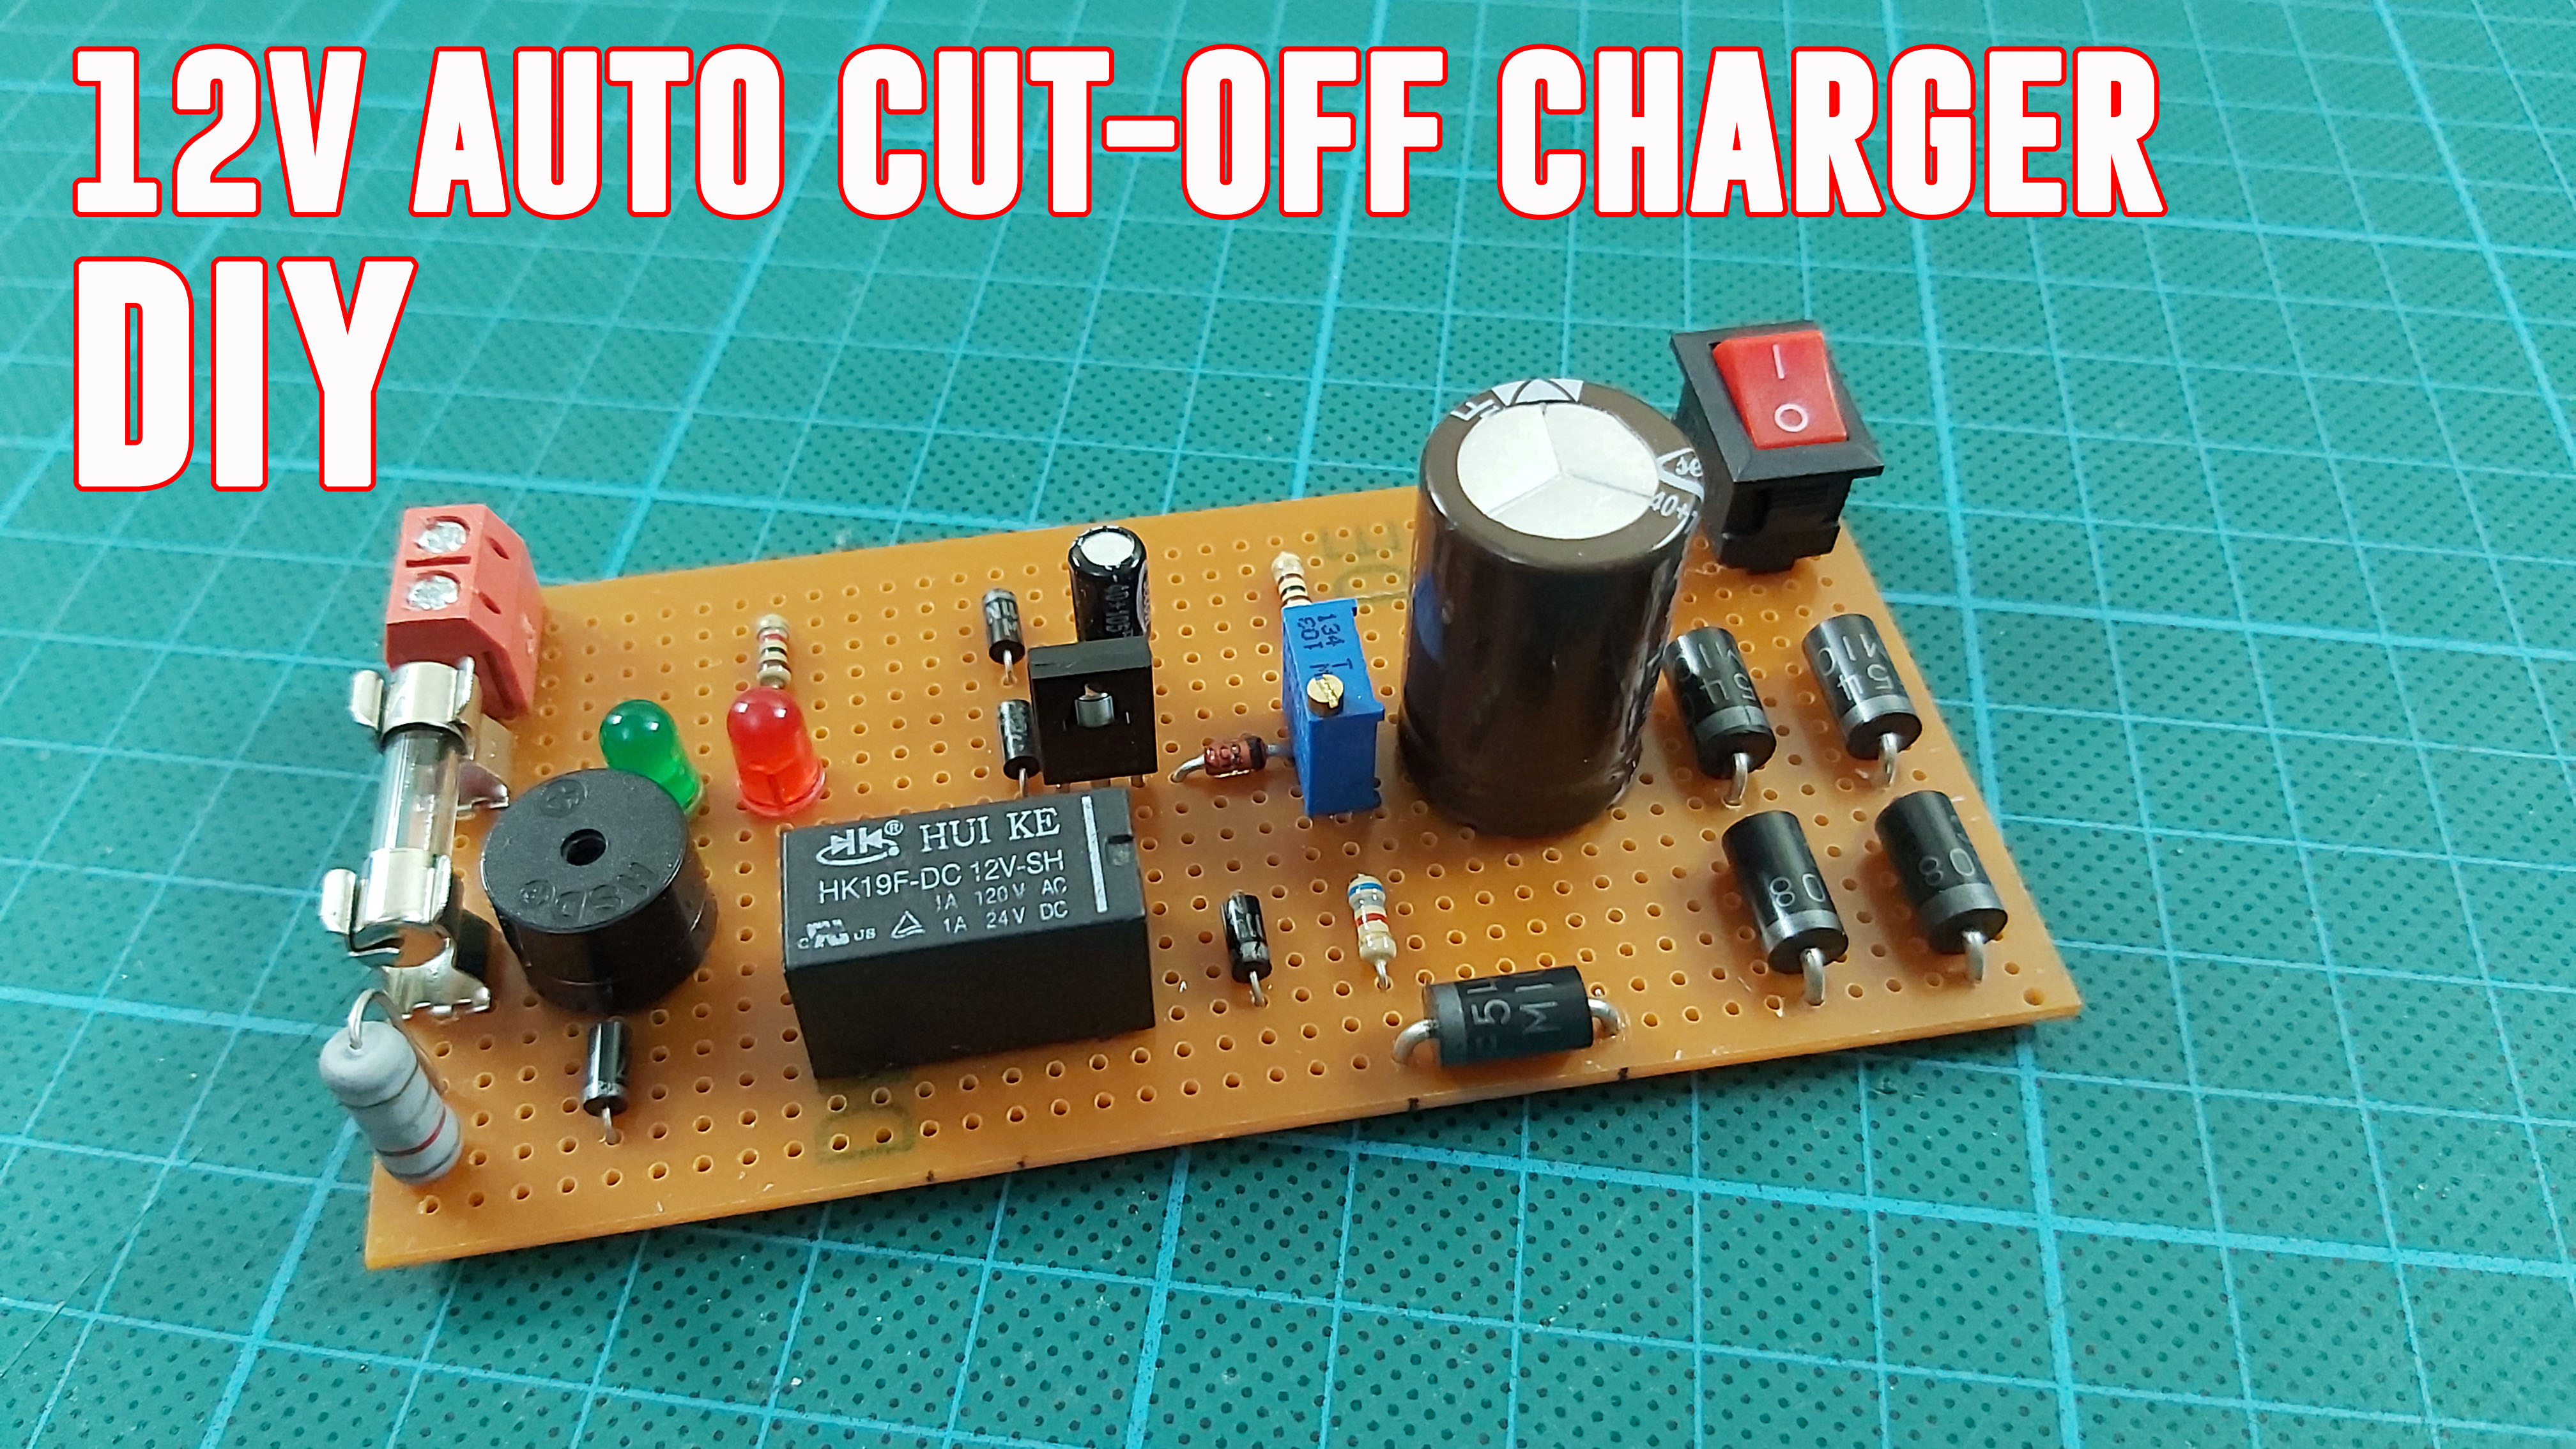 12V Lead Acid Battery Charging Circuit with Auto Cut-Off. DIY PB Battery Charger